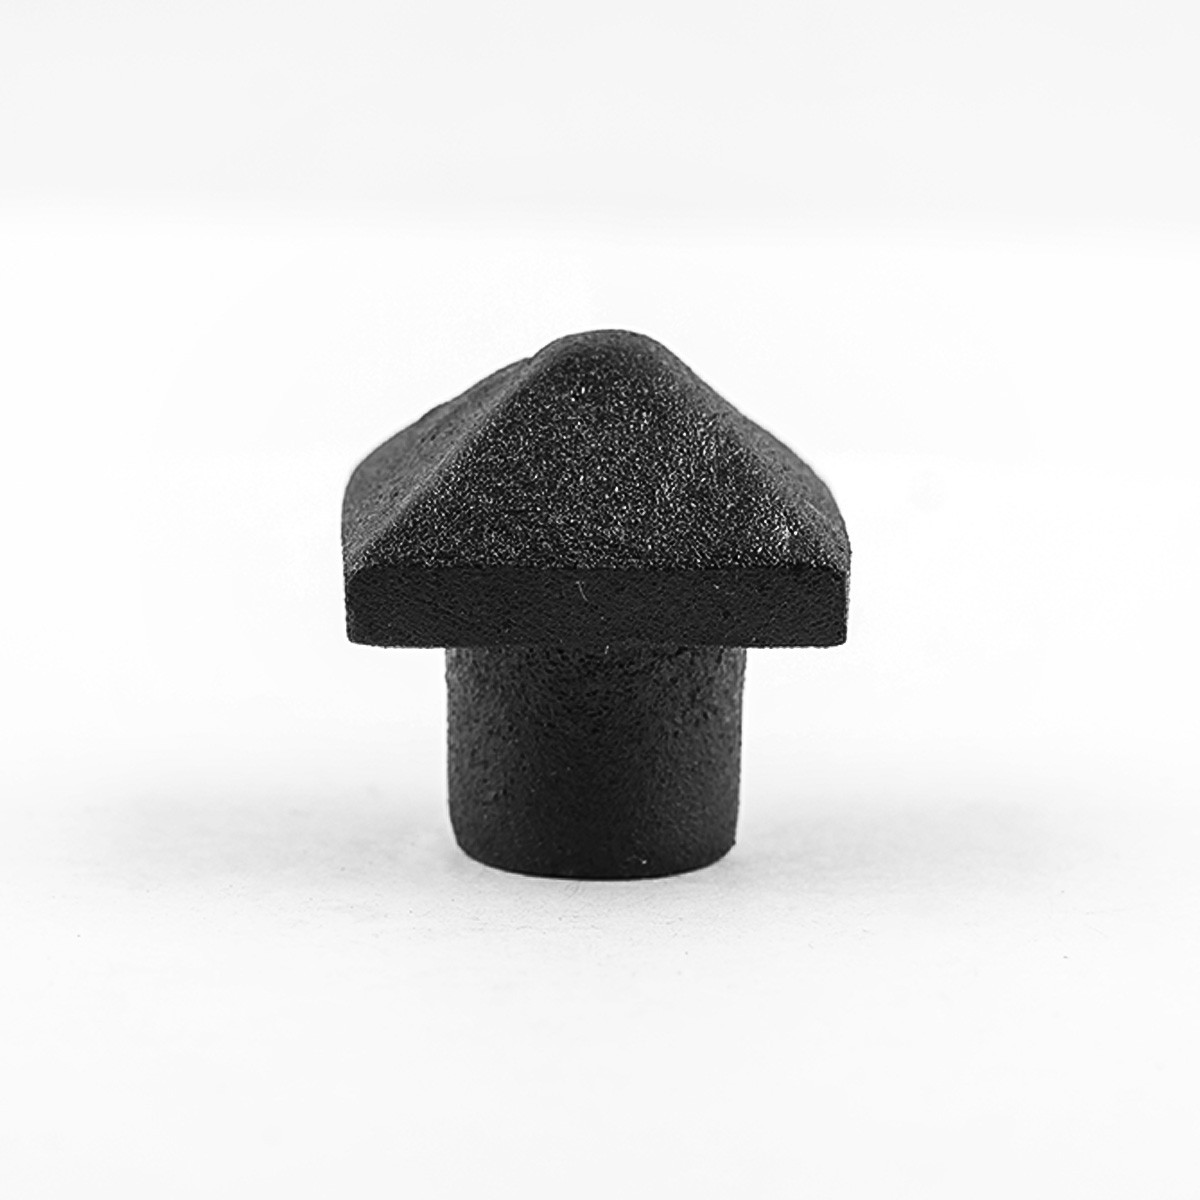 Cabinet Knobs Wrought Iron Black Knobs 1 Wrought Iron Cabinet Knobs Black Kitchen Knobs Vintage Black Dresser Knobs